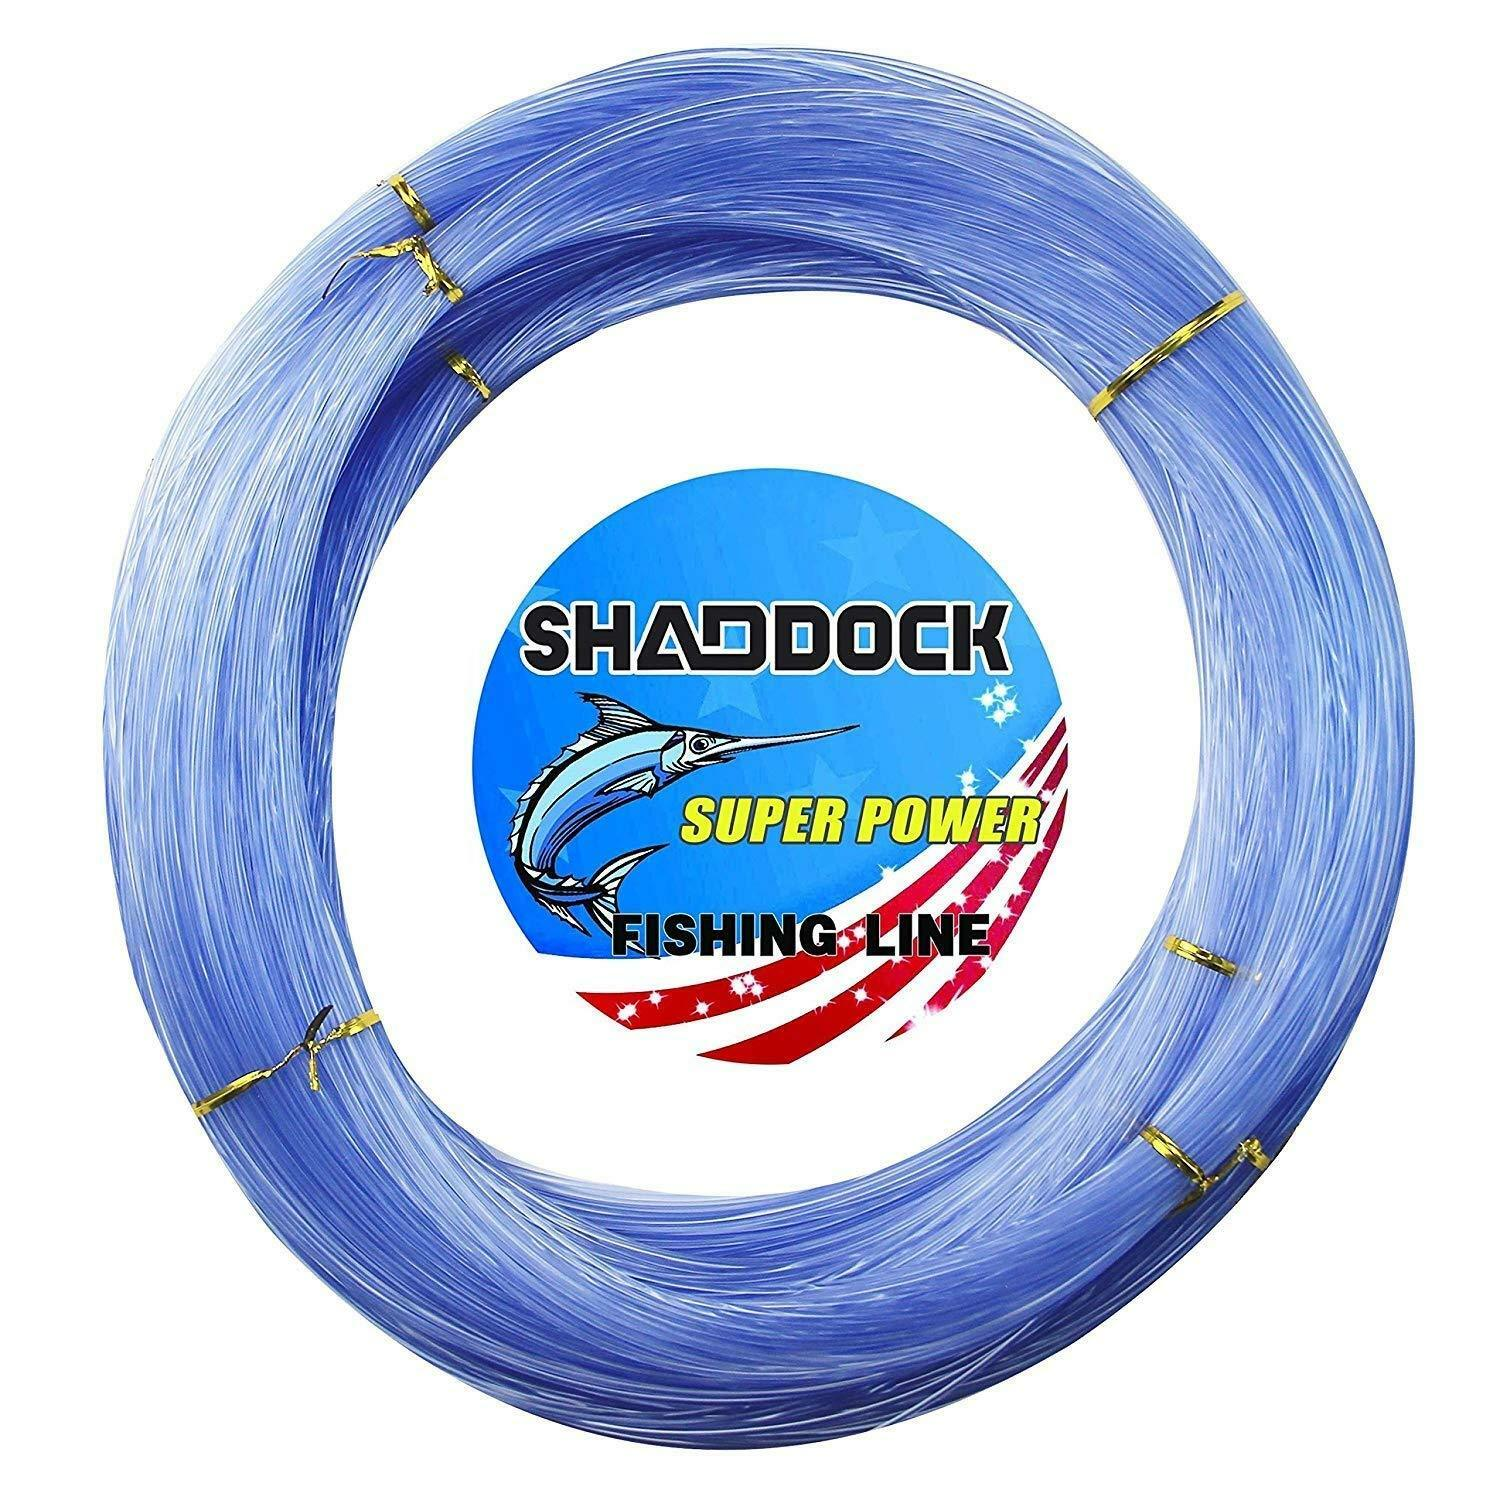 Soytich 500m Monofilament Line Fishing Line Various Strength 500mT